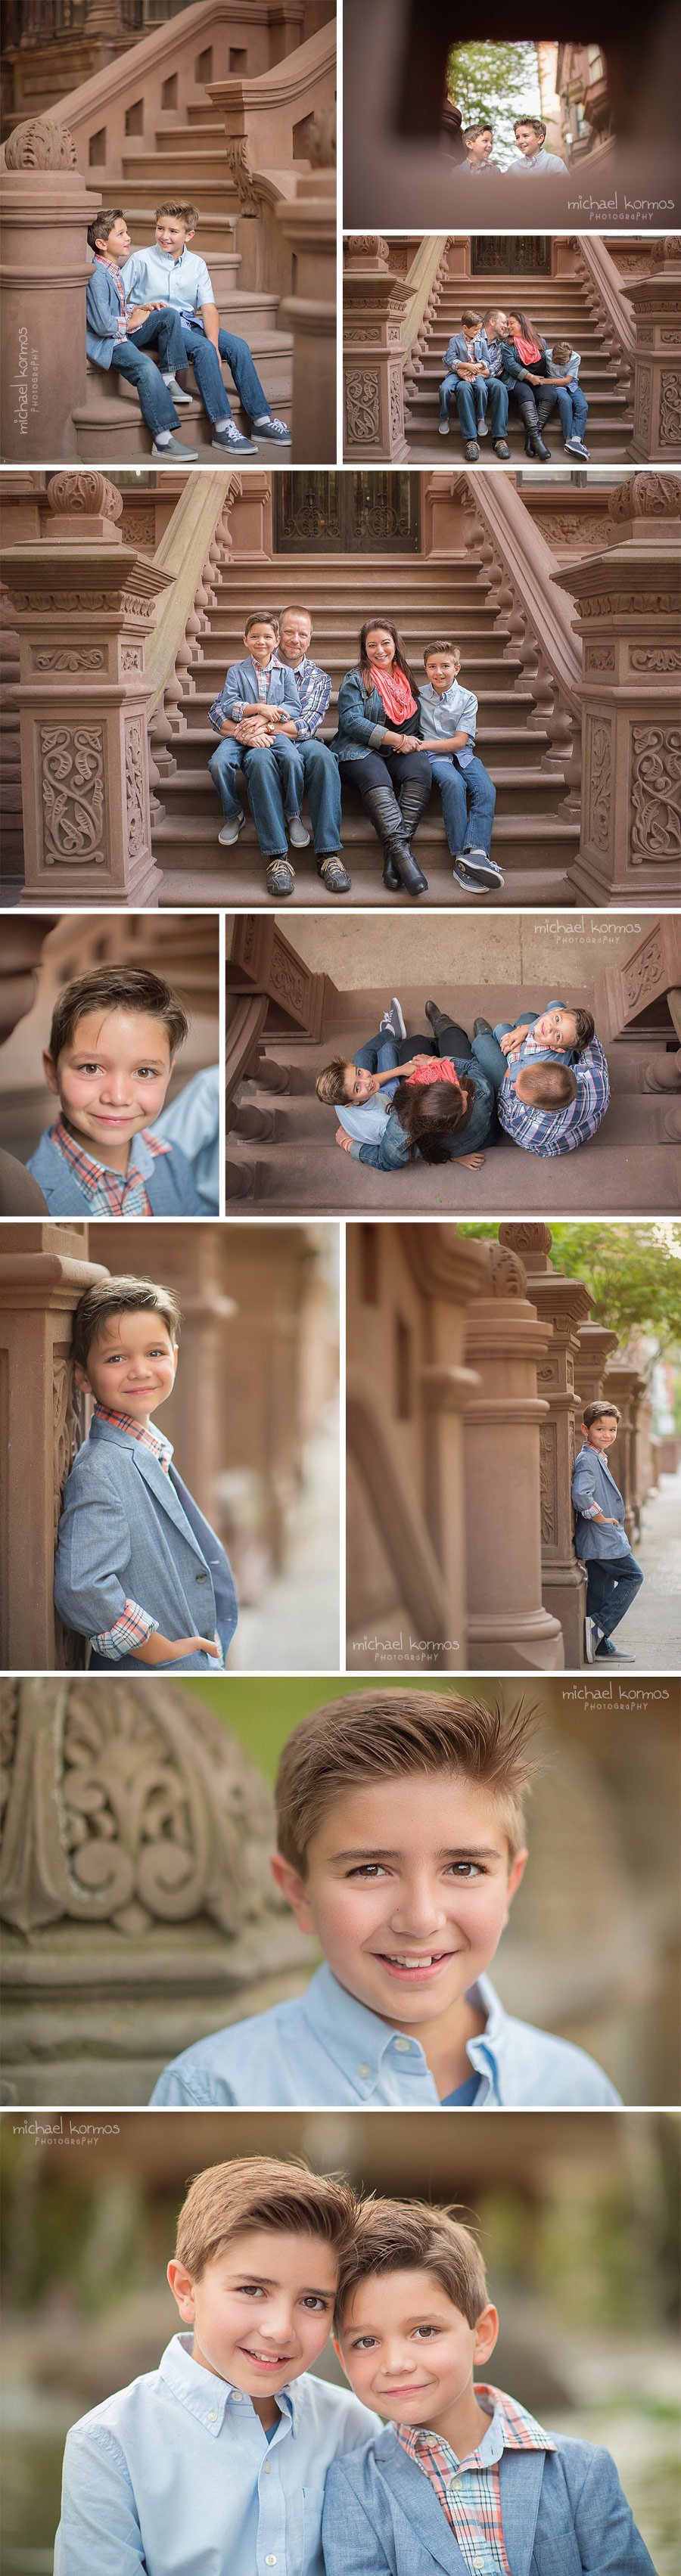 lifestyle Central Park family photo shoot